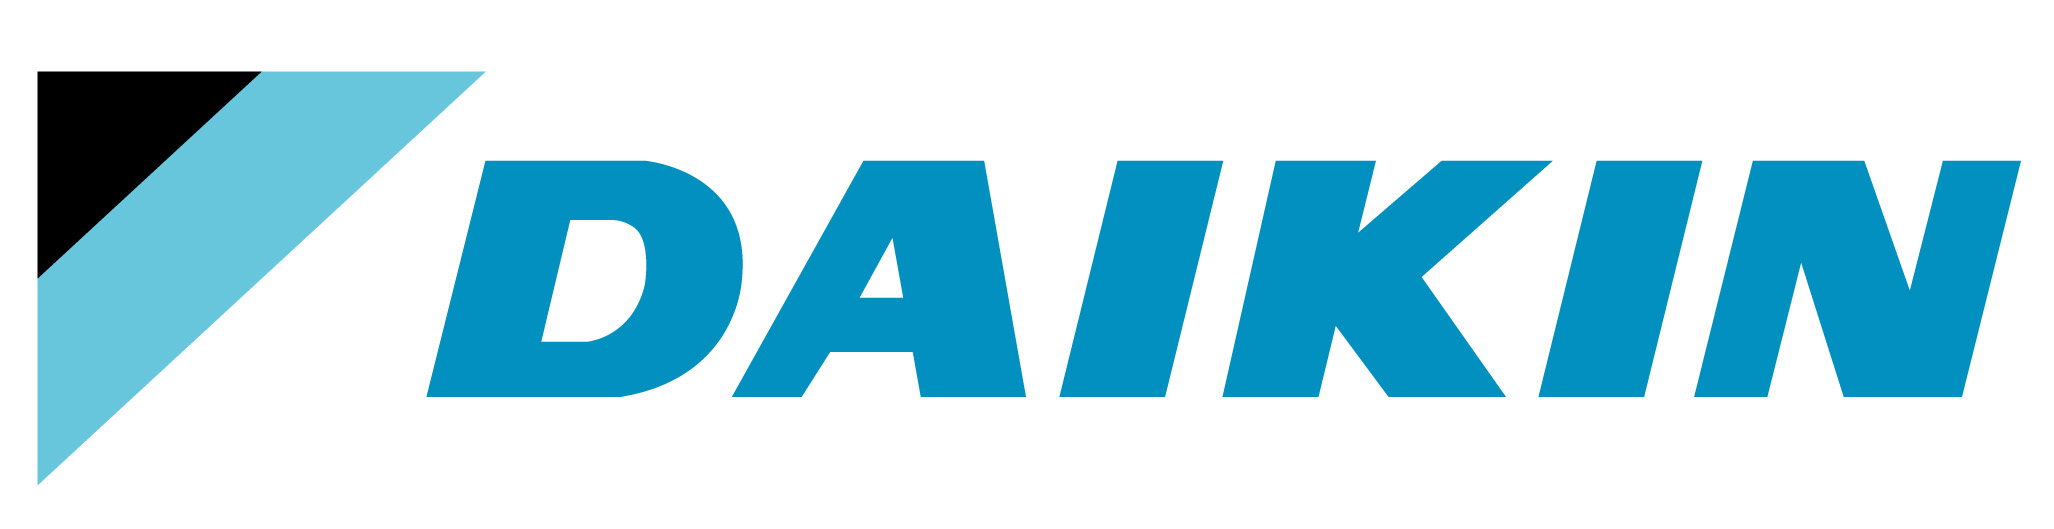 Daikin-Logo-FULL-COLOUR-HORIZONTAL-Converted.jpg